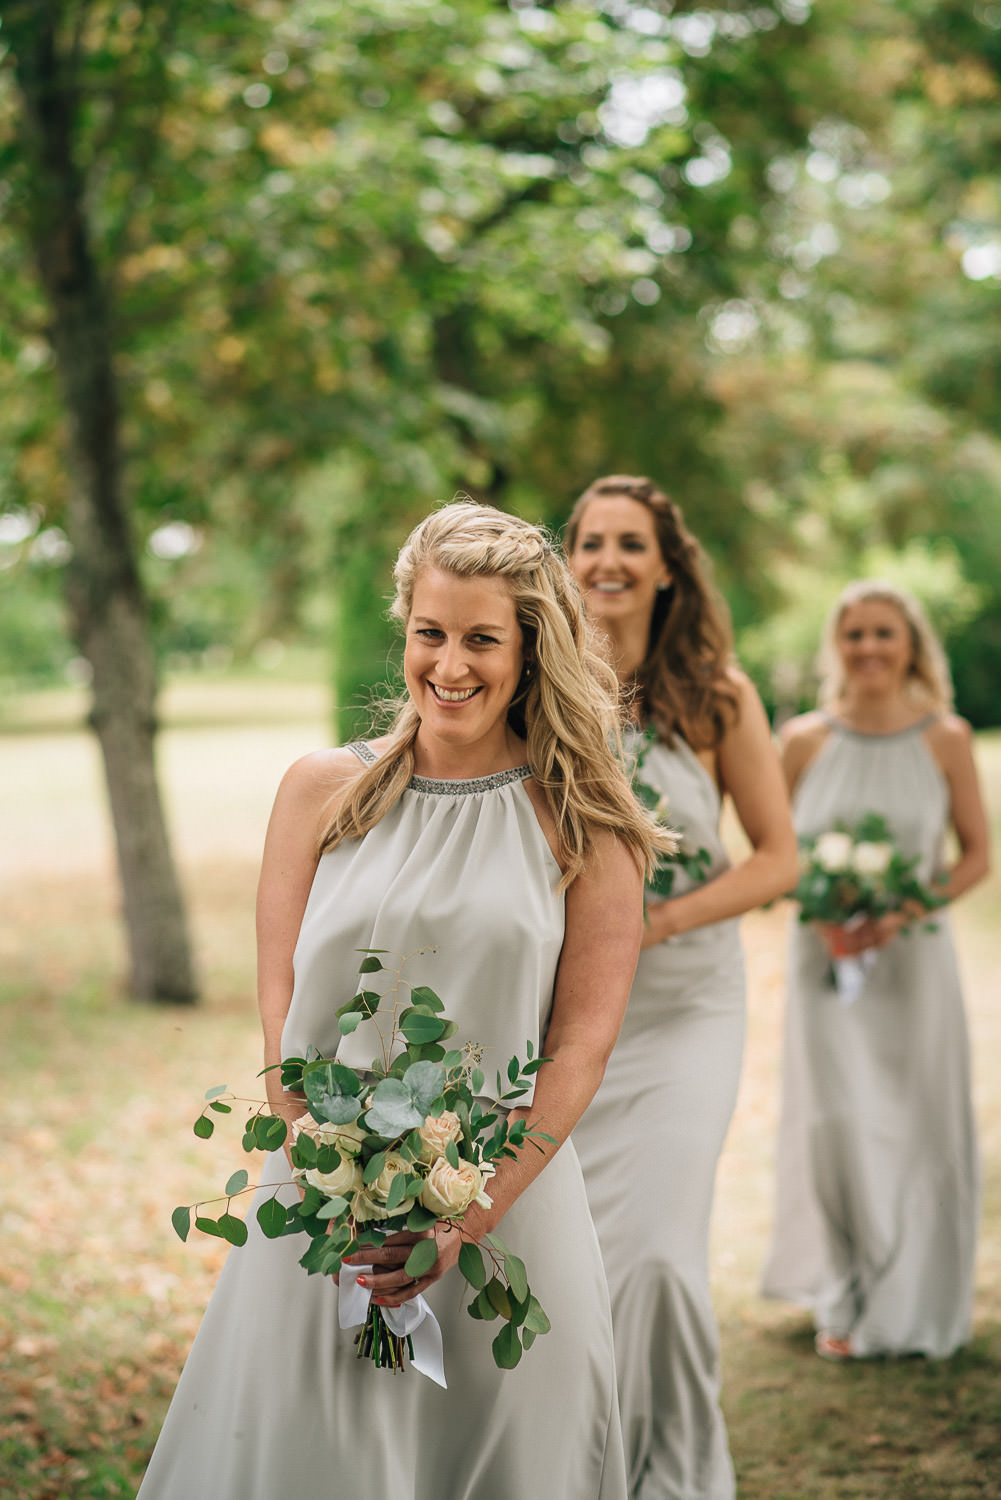 Bridesmaids arriving in chateau de la bourlie wedding by french destination wedding photographer the shannons photography